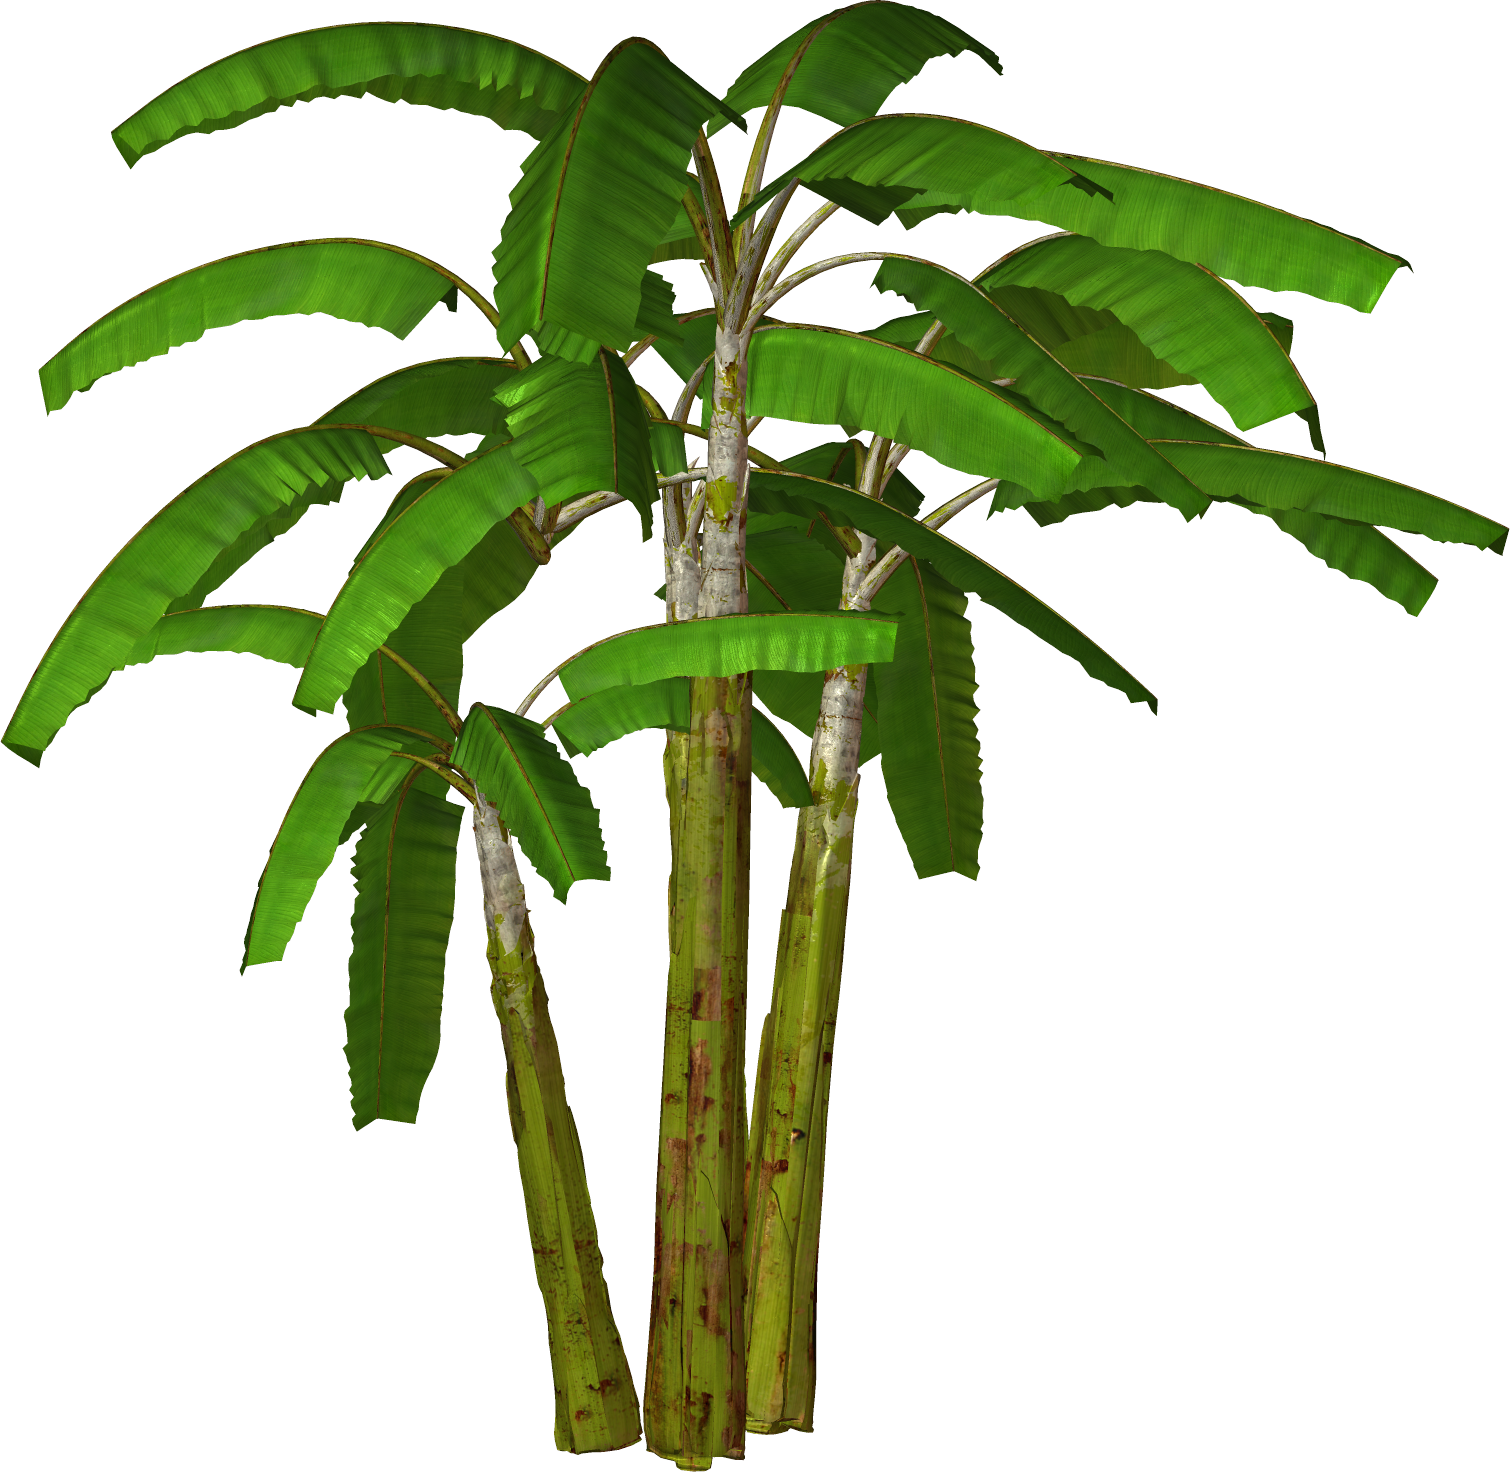 Palm Tree Transparent Background image #31905